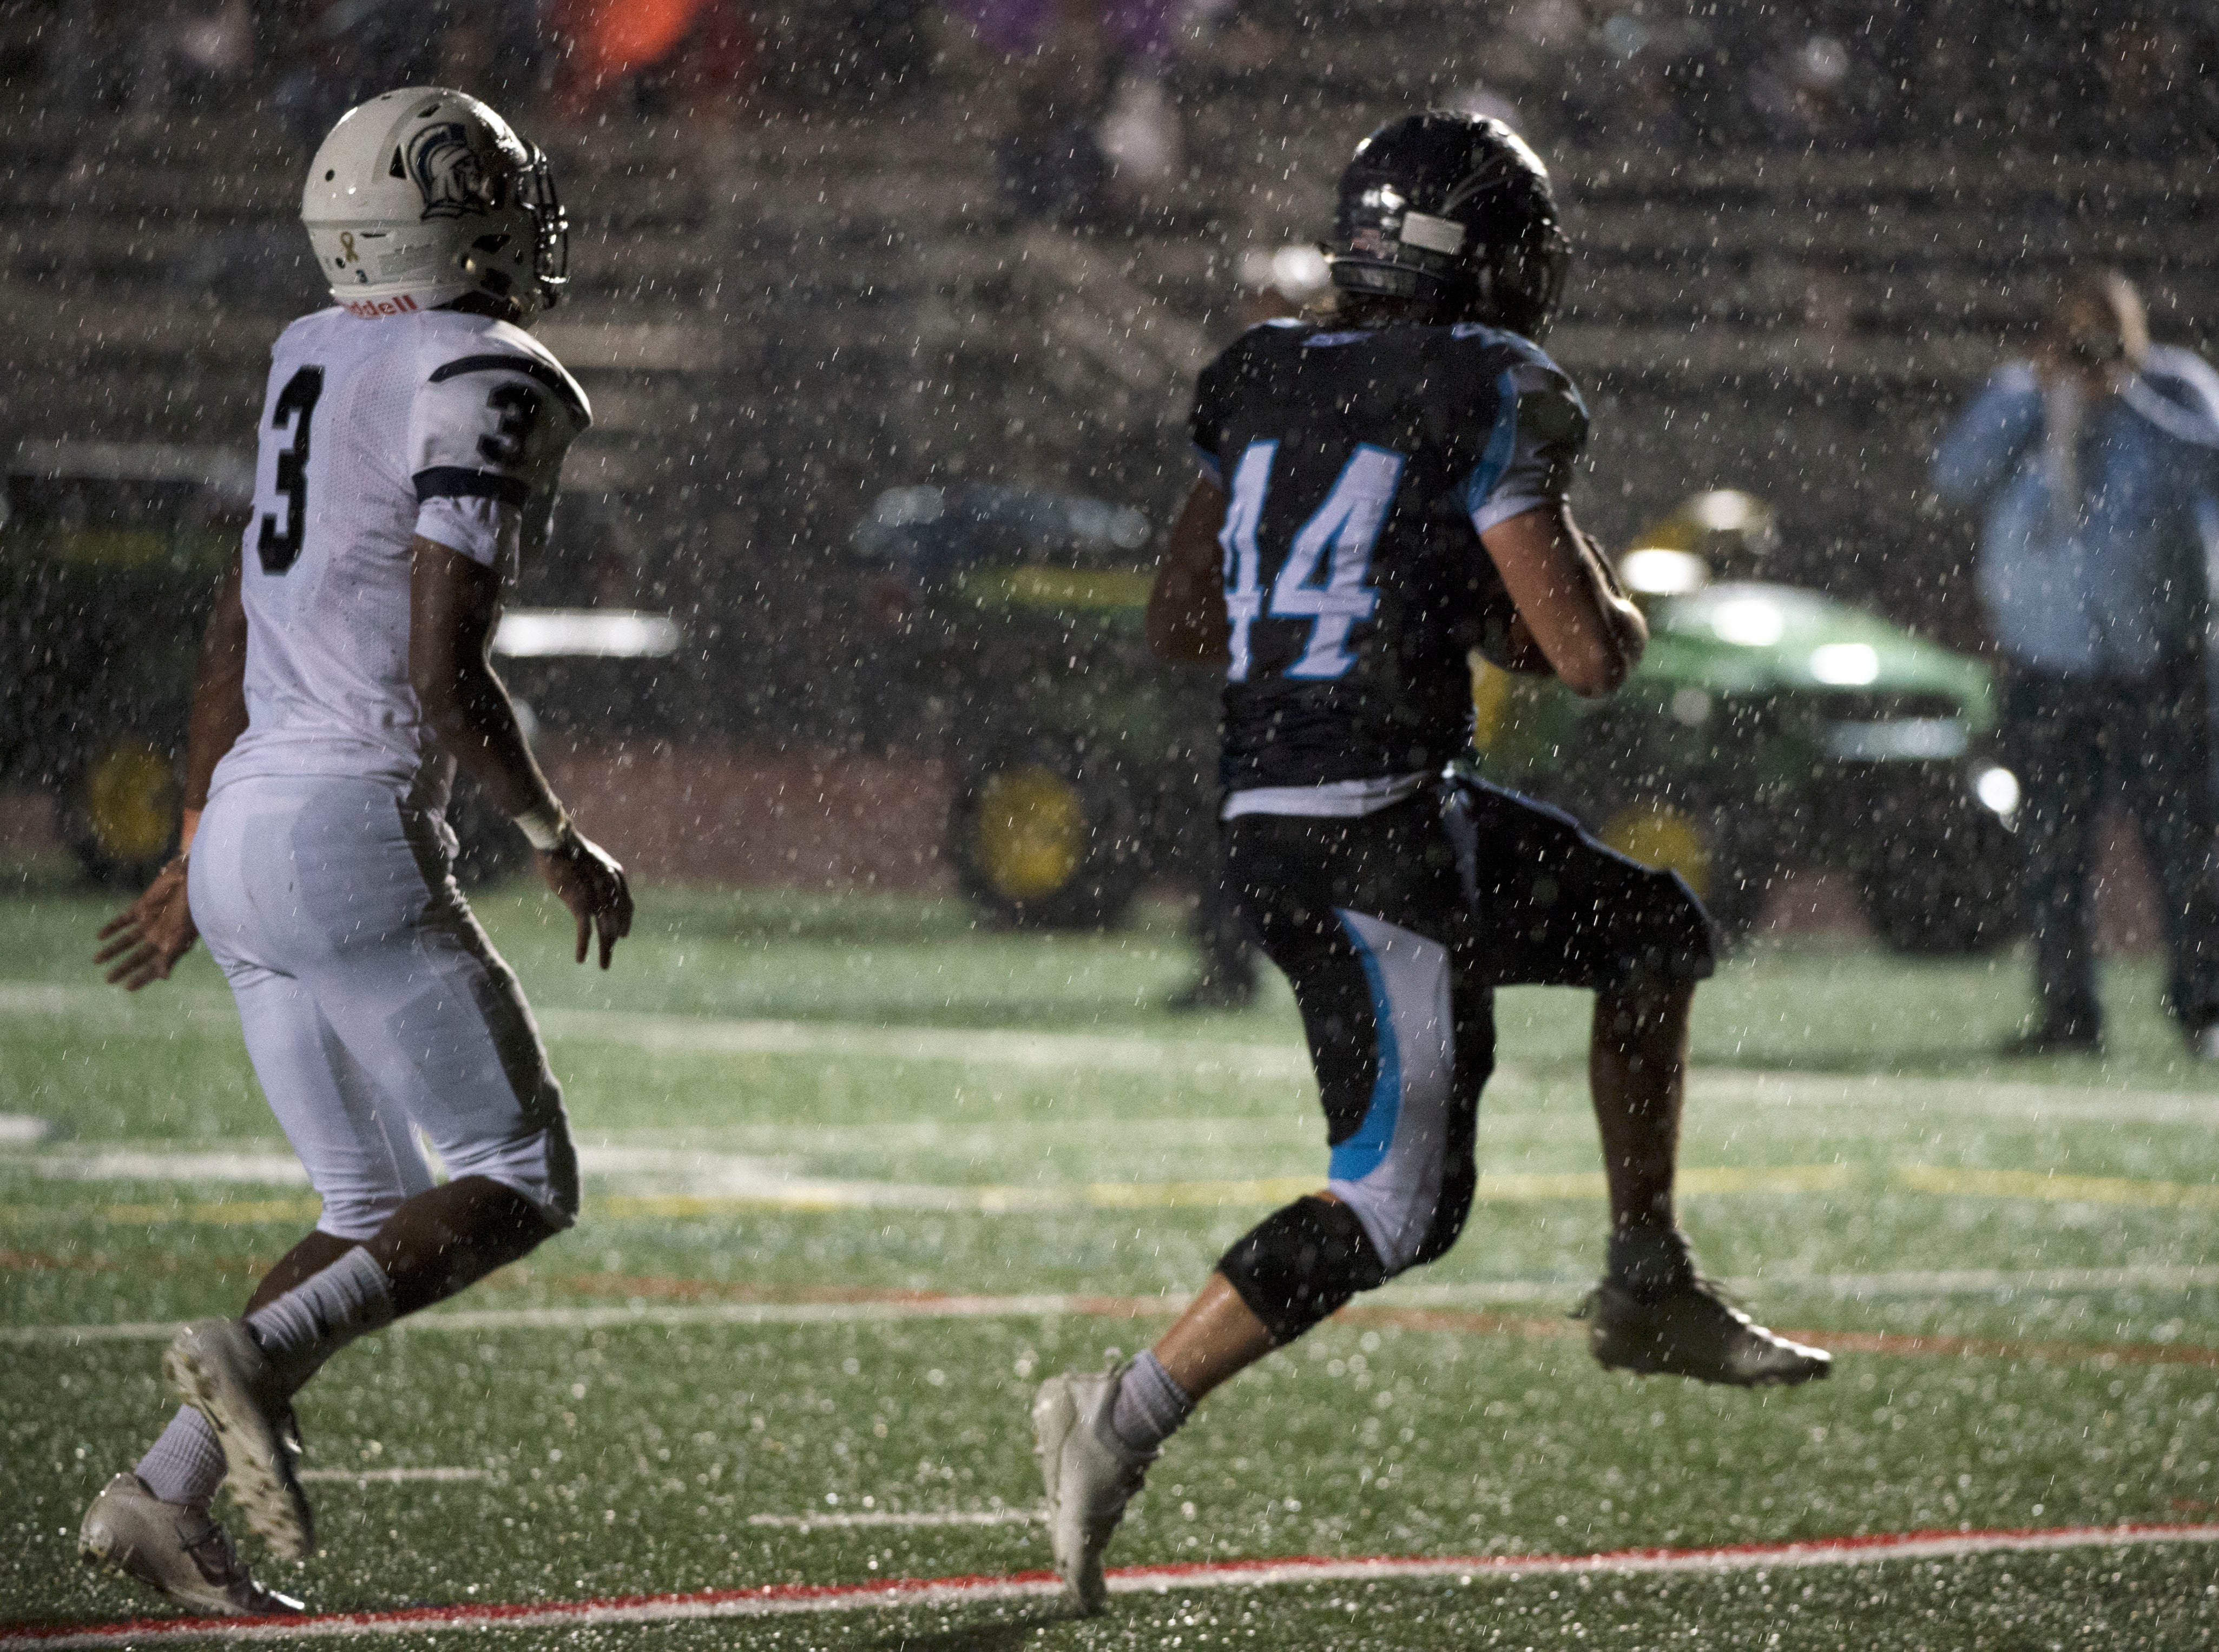 Manheim Central's Jaden Floyd (44) takes the ball in for a score. Chambersburg Trojans dropped a close game 20-17 to Manheim Township Blue Streaks in the rain during PIAA District 3 playoff football on Friday, Nov. 2, 2018.